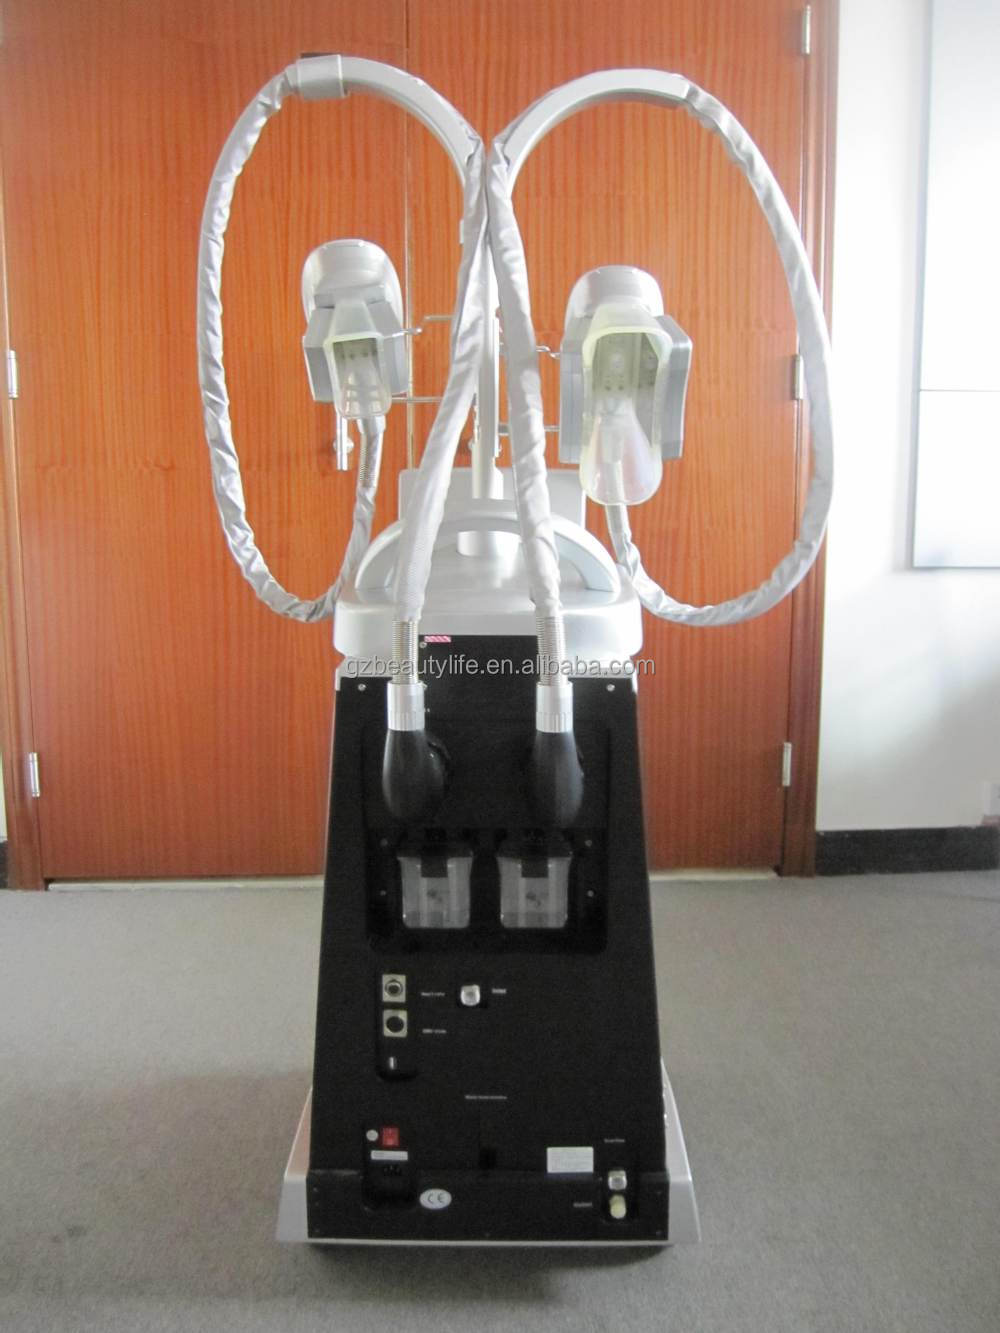 ETG50-4S Cryolipolysis Cryo fat freezing slimming machine for sale